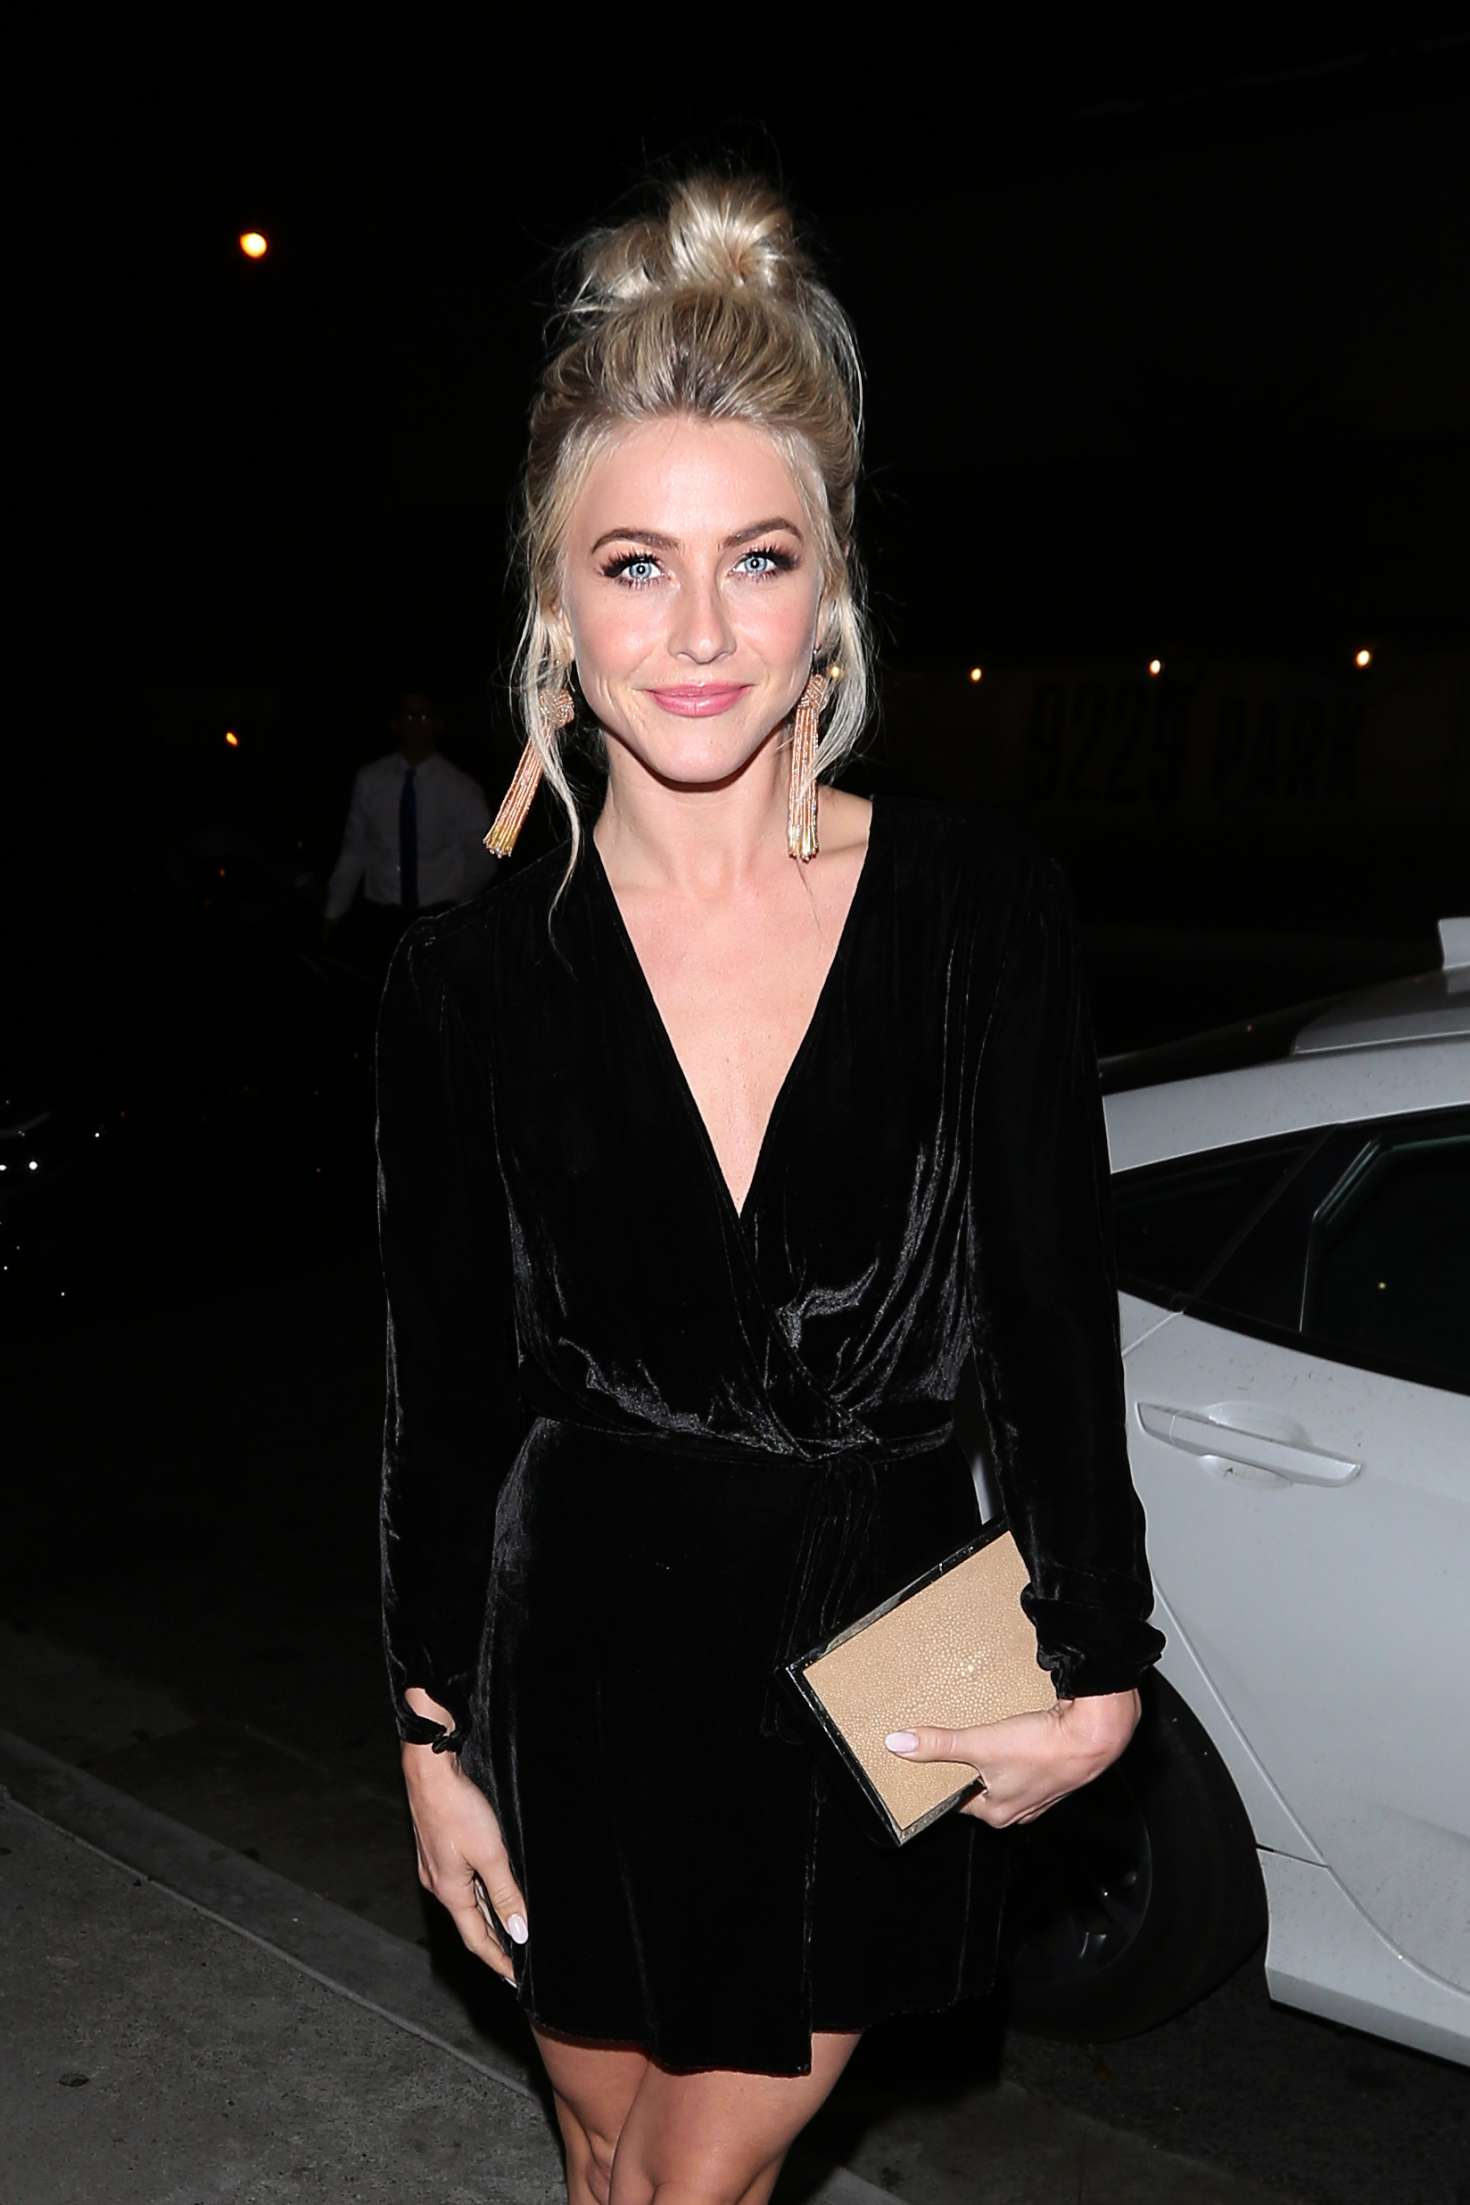 Gabriella Onion Booty within julianne hough - celebrates a friend's birthday at boa steakhouse